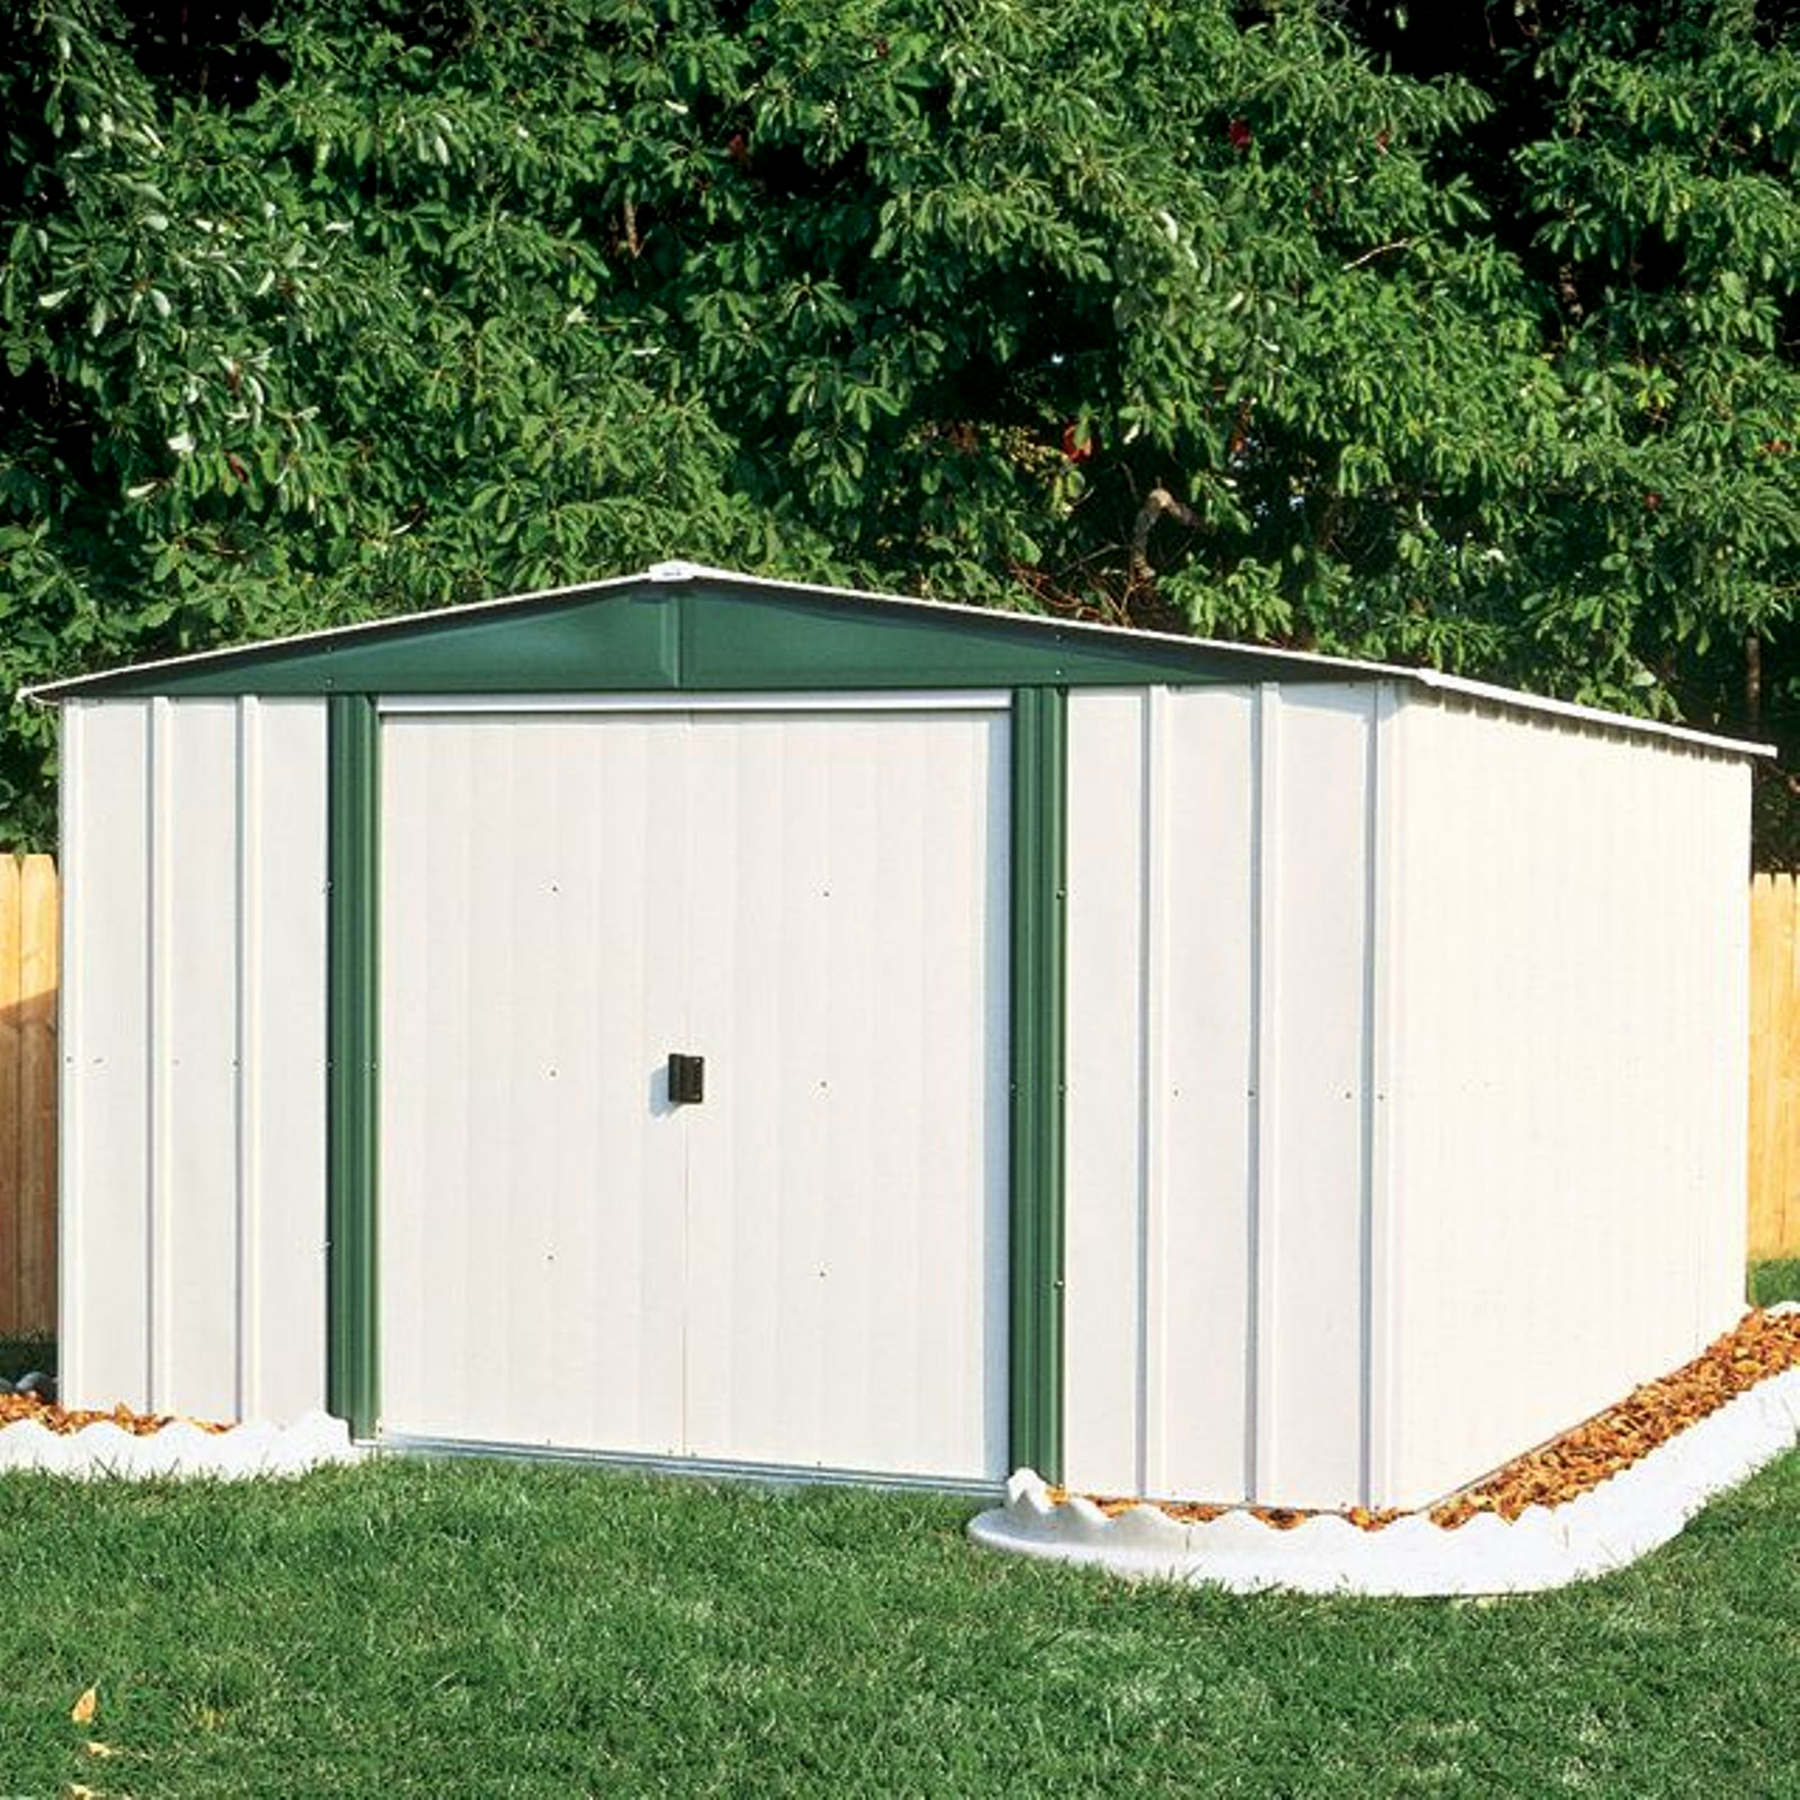 Arrow Sr68206 10' X 6' Storage Shed